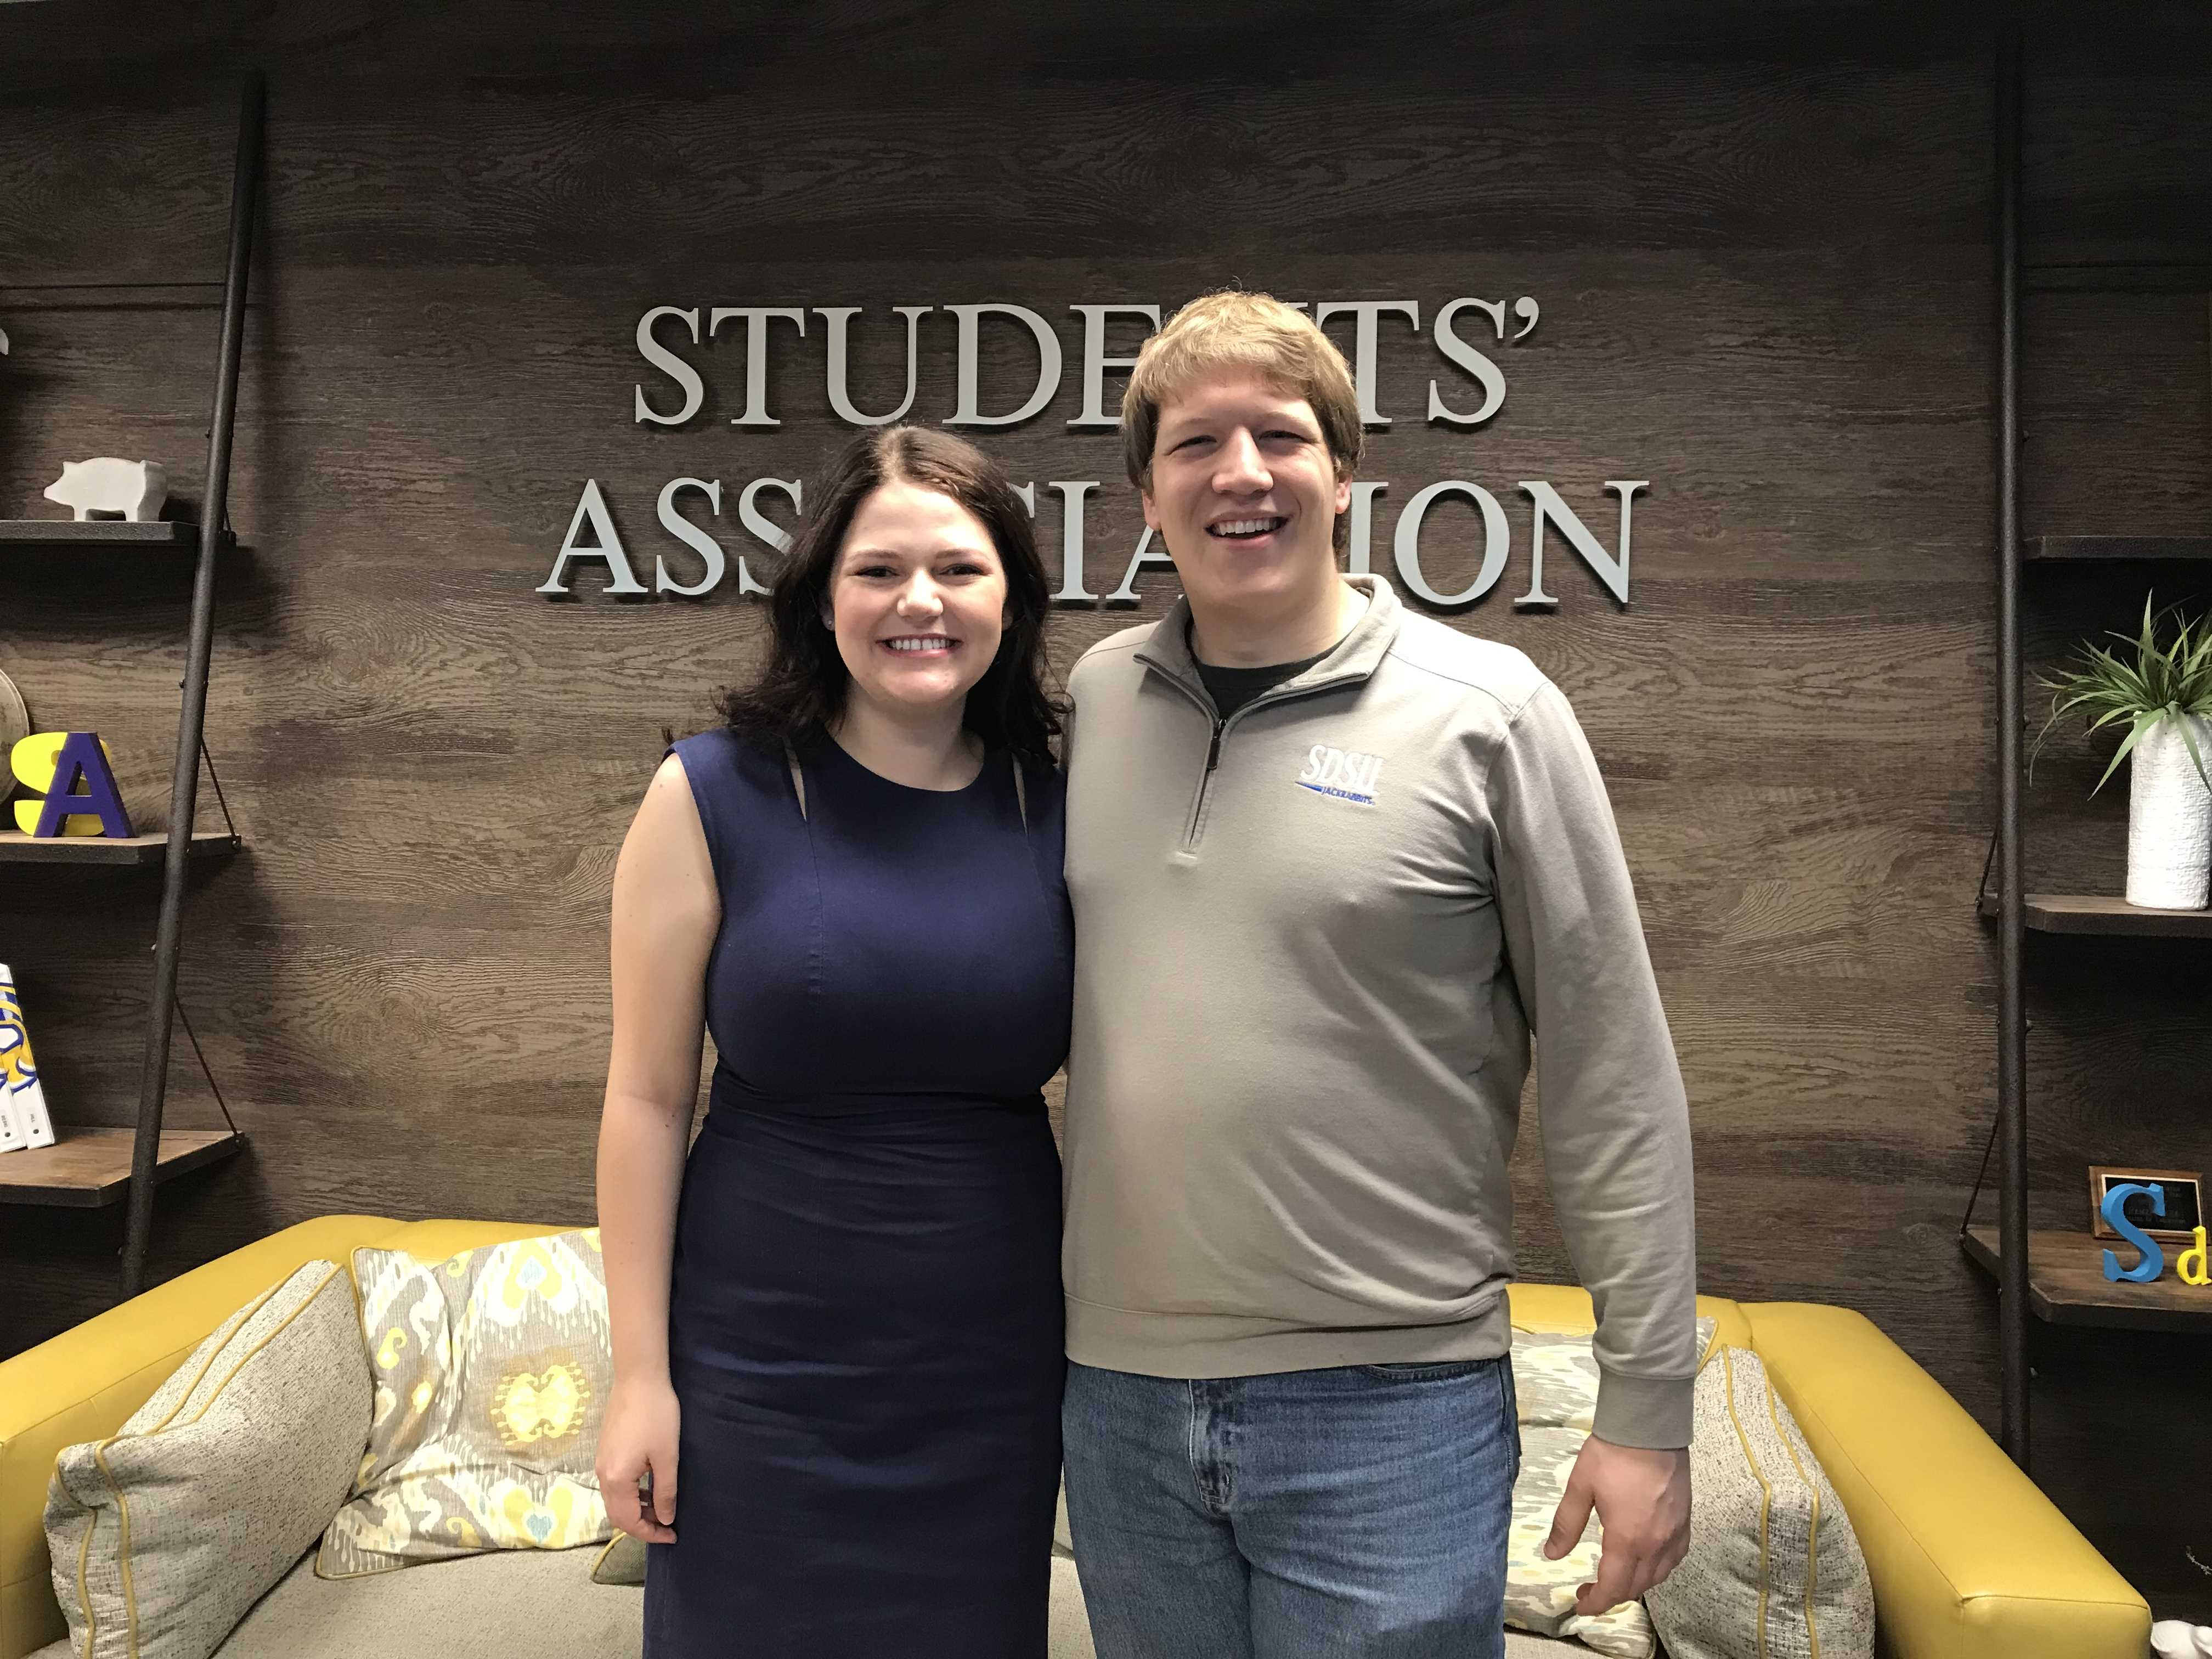 Allyson Monson and Spencer Harwood ran uncontested in the 2018 SA president and vice president race.